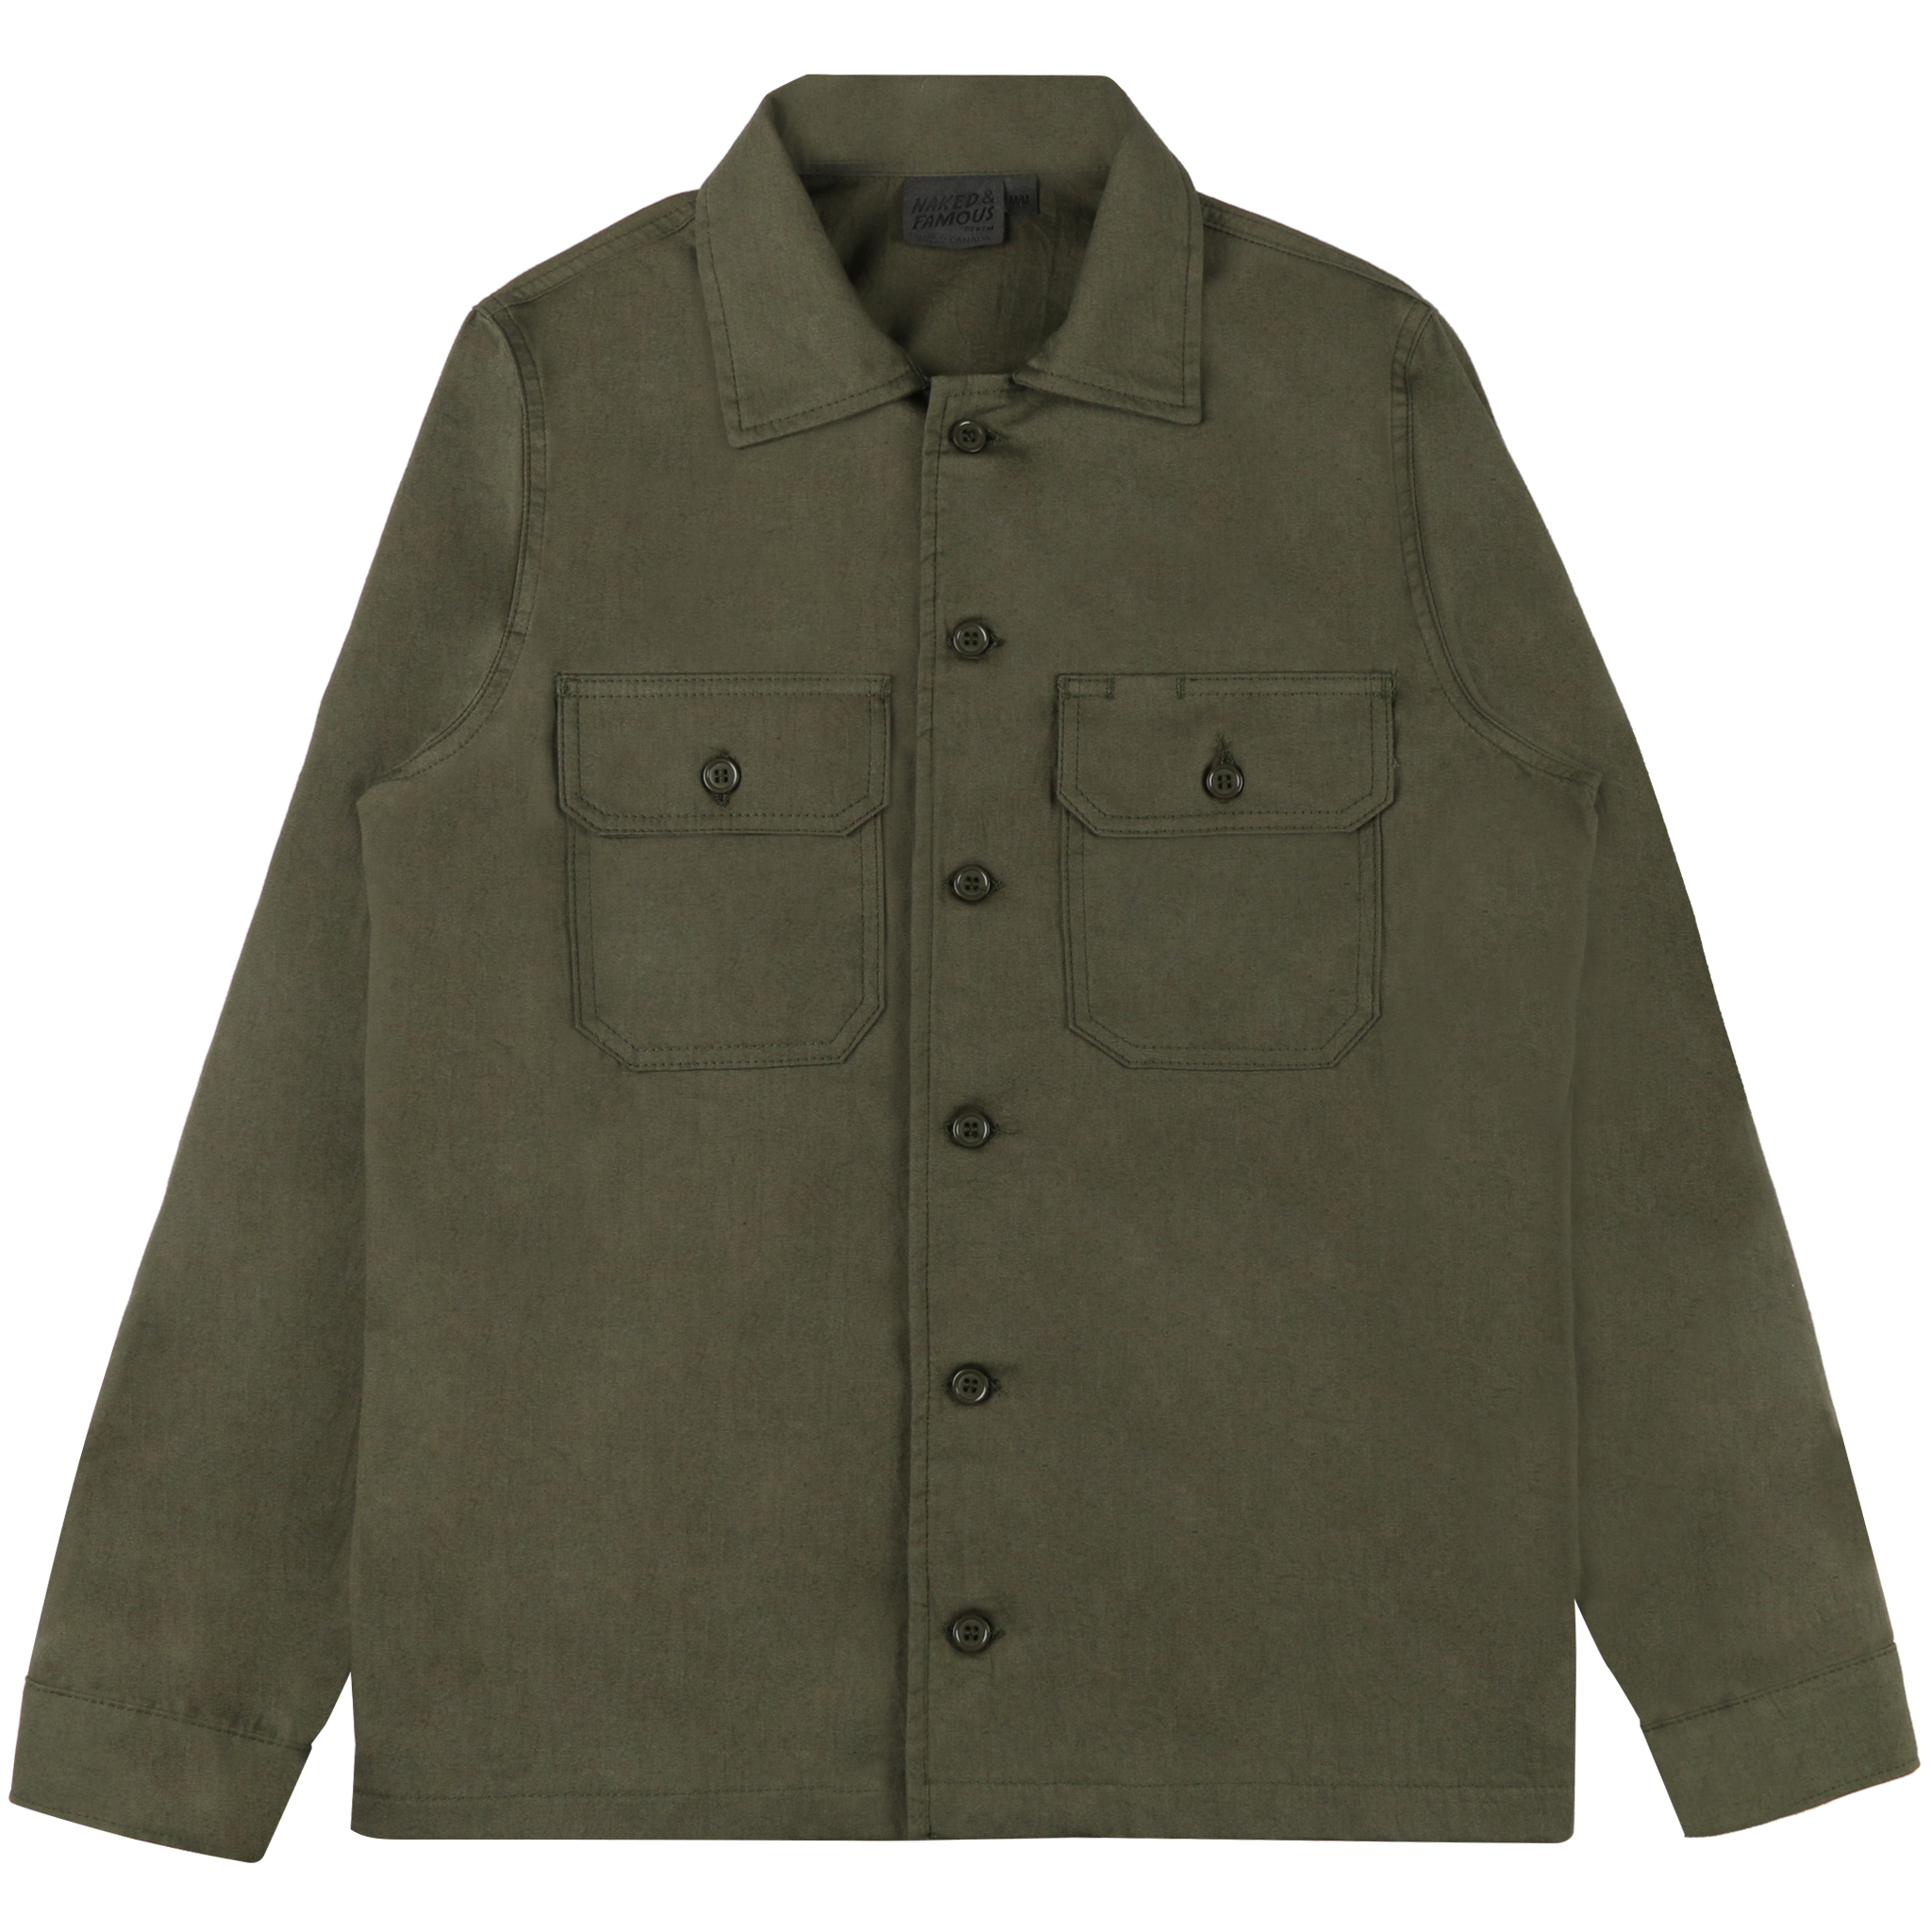 Green Workshirt Flat View